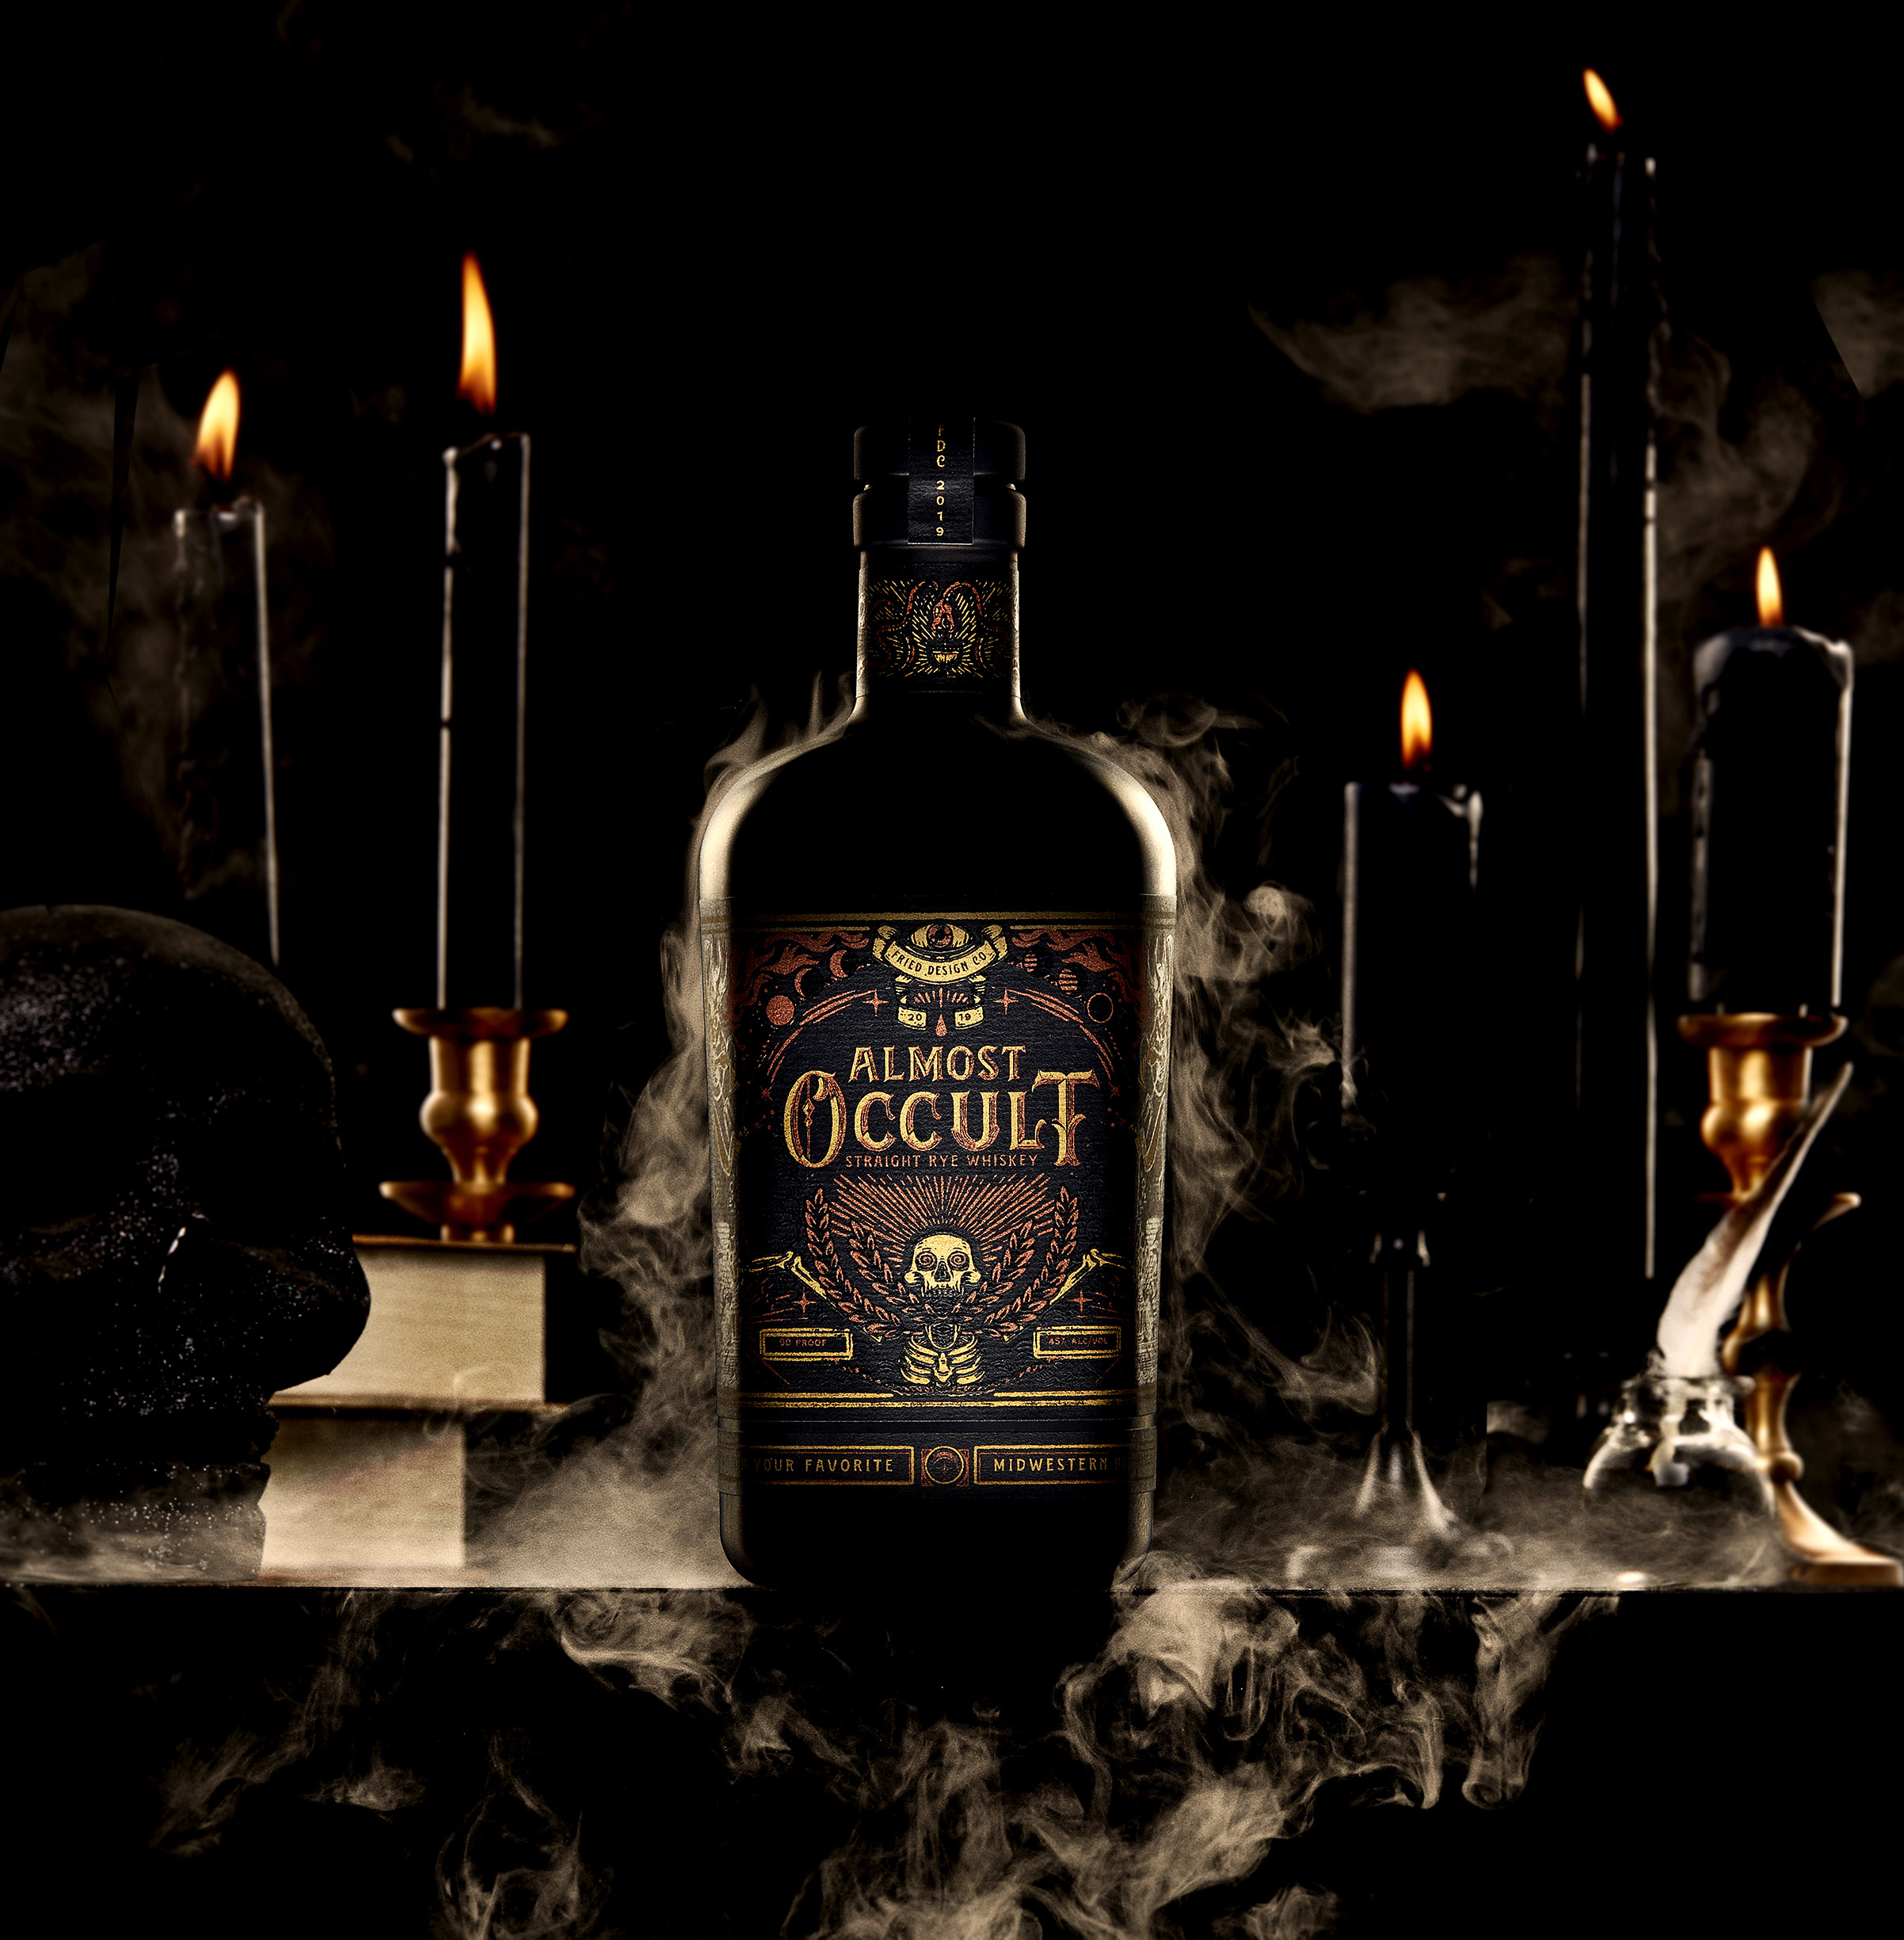 Fried Design Company Gets in the Spirit With Almost Occult Rye Whiskey Holiday Gift